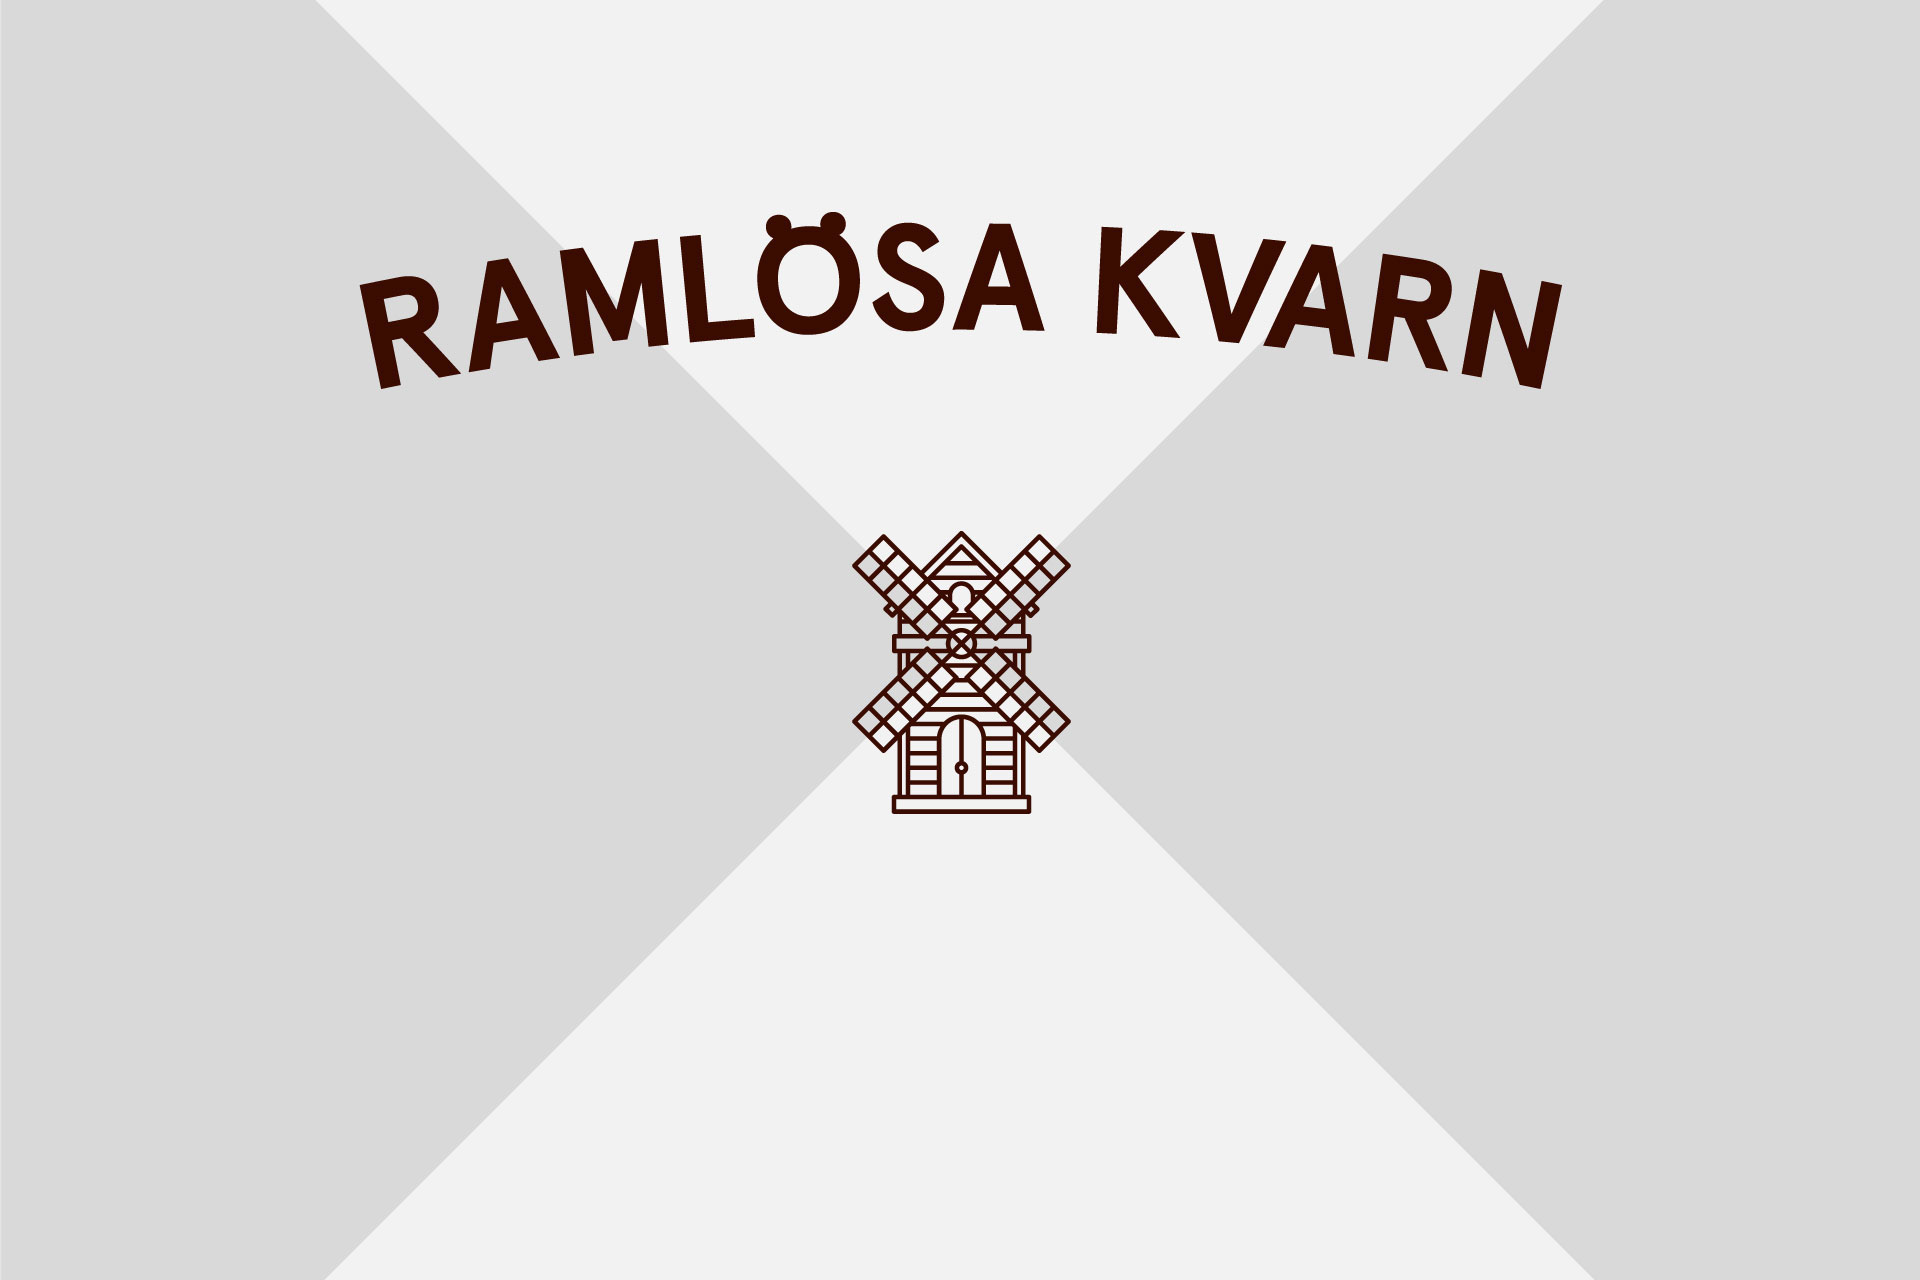 Amore's new logo for Ramlösa Kvarn. Image courtesy of Amore.